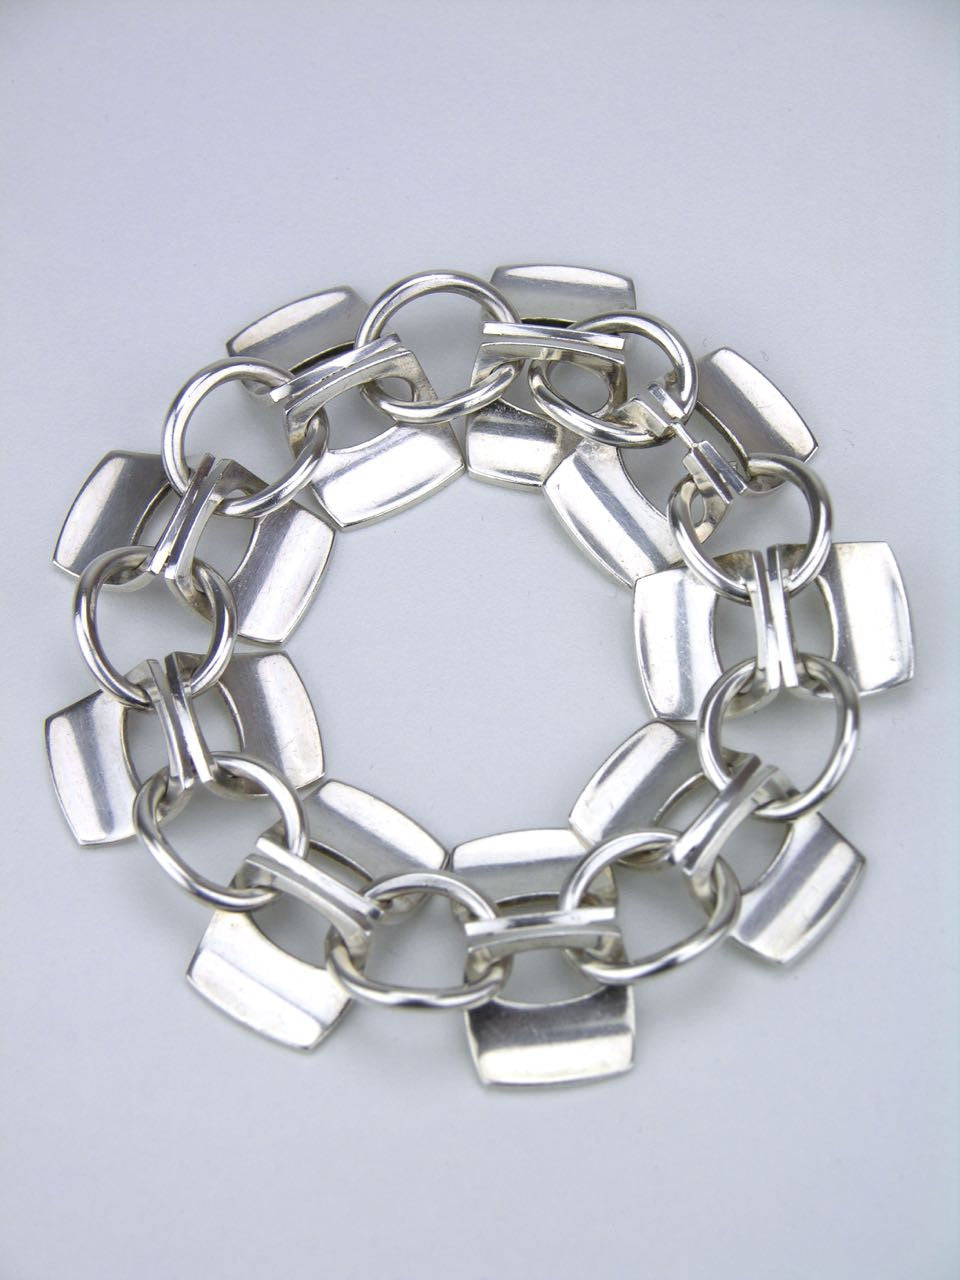 Alton pair of solid silver architectural bracelets that also form a necklace